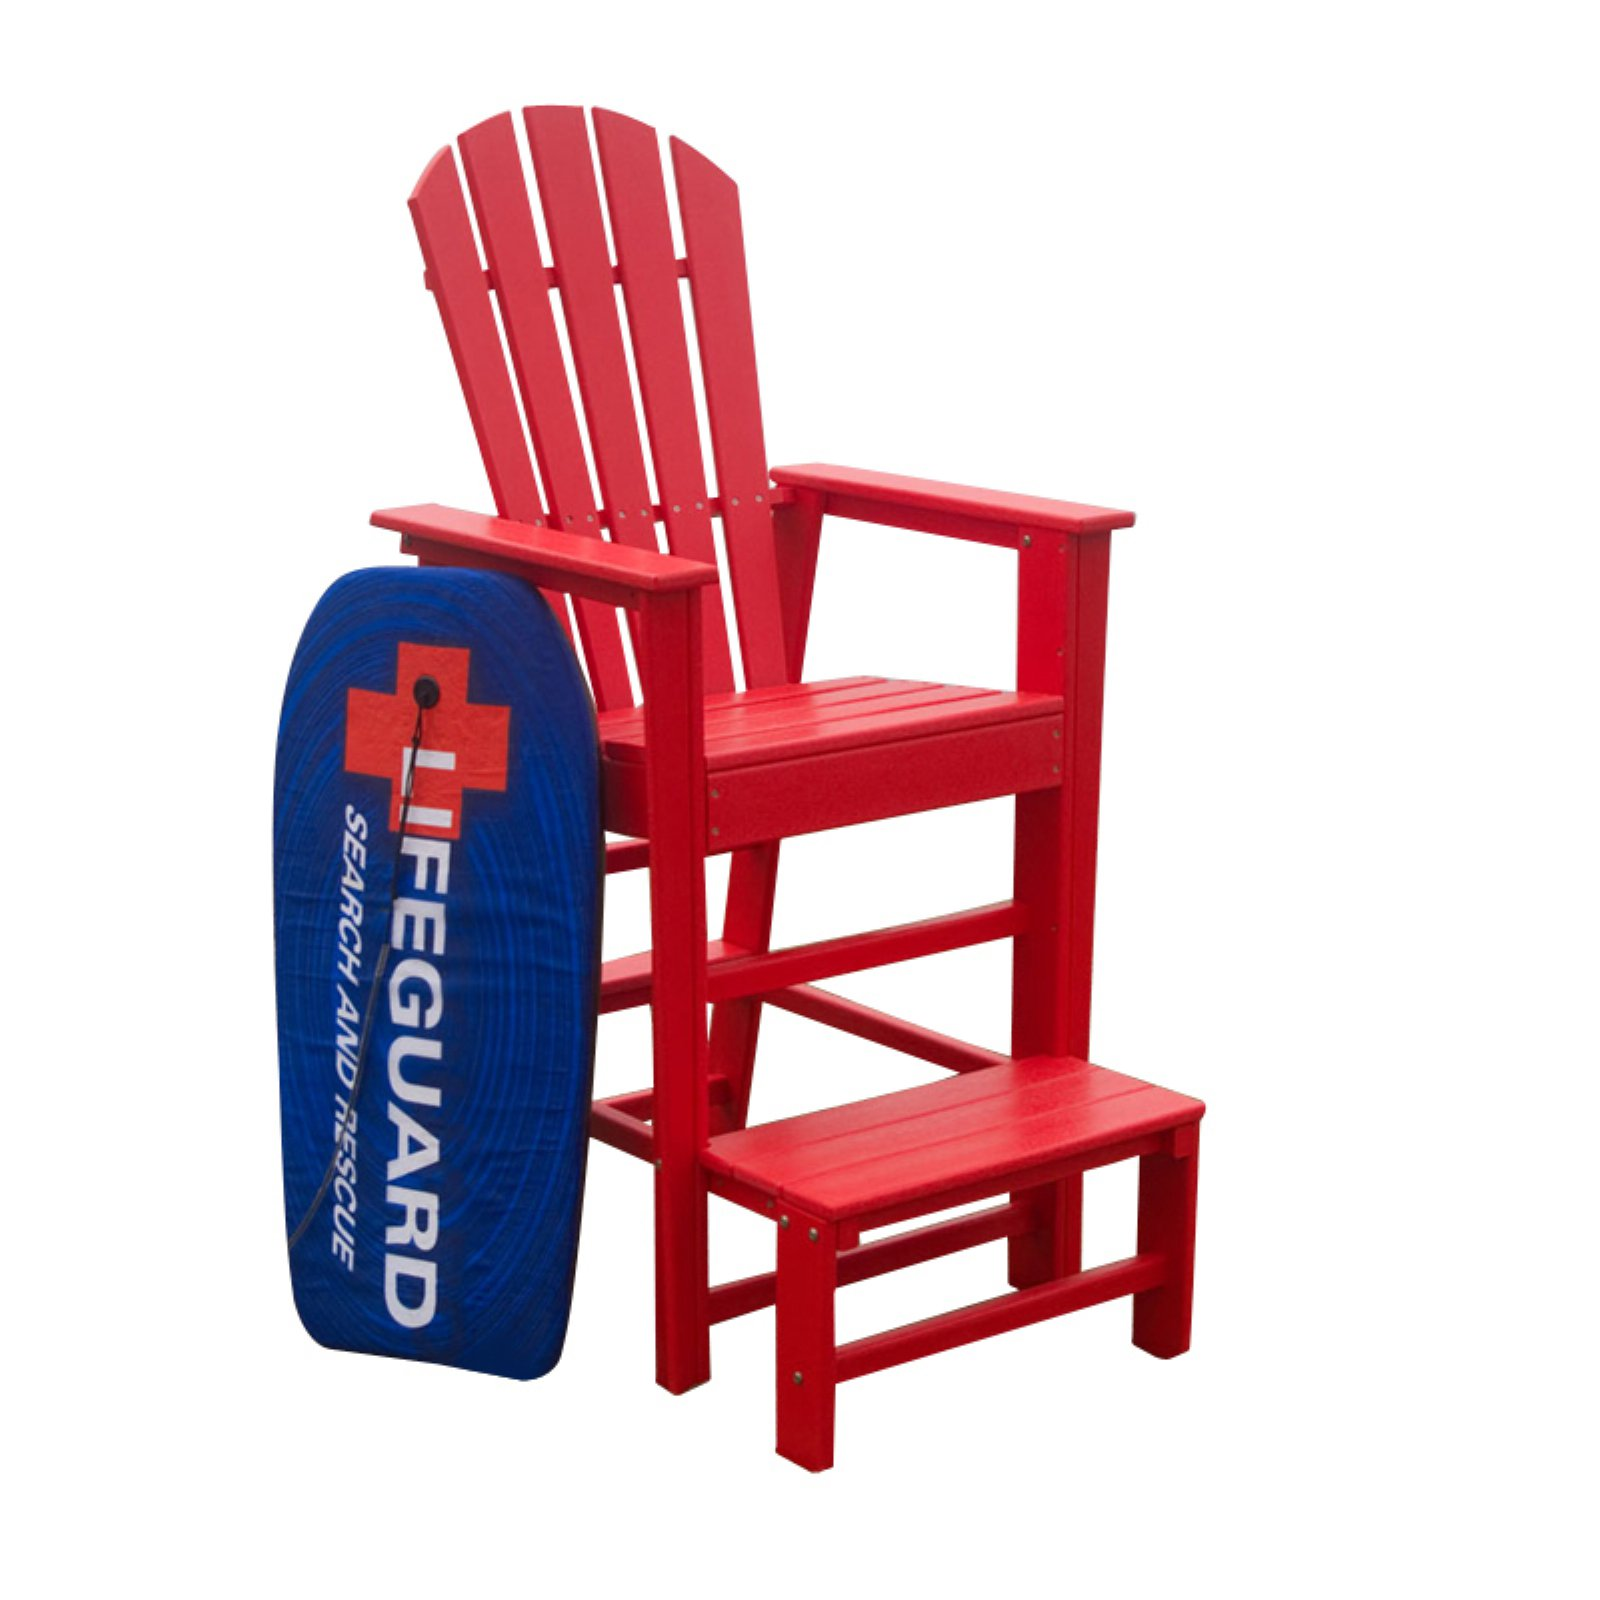 POLYWOOD South Beach Recycled Plastic Life Guard Chair